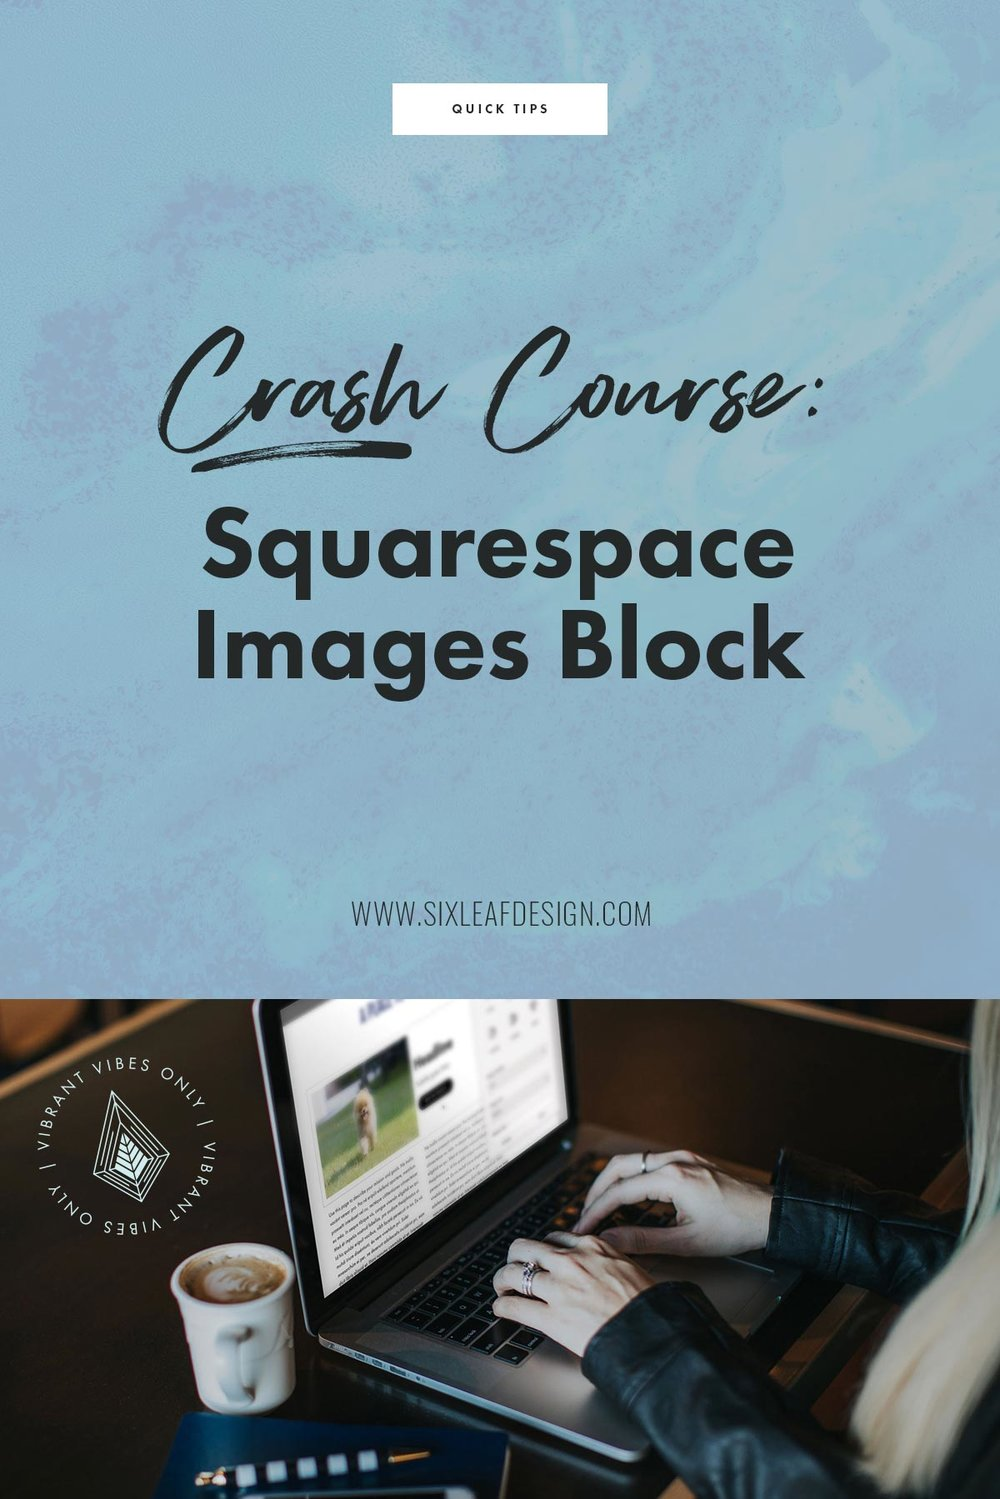 How To Use The Images Block on Squarespace